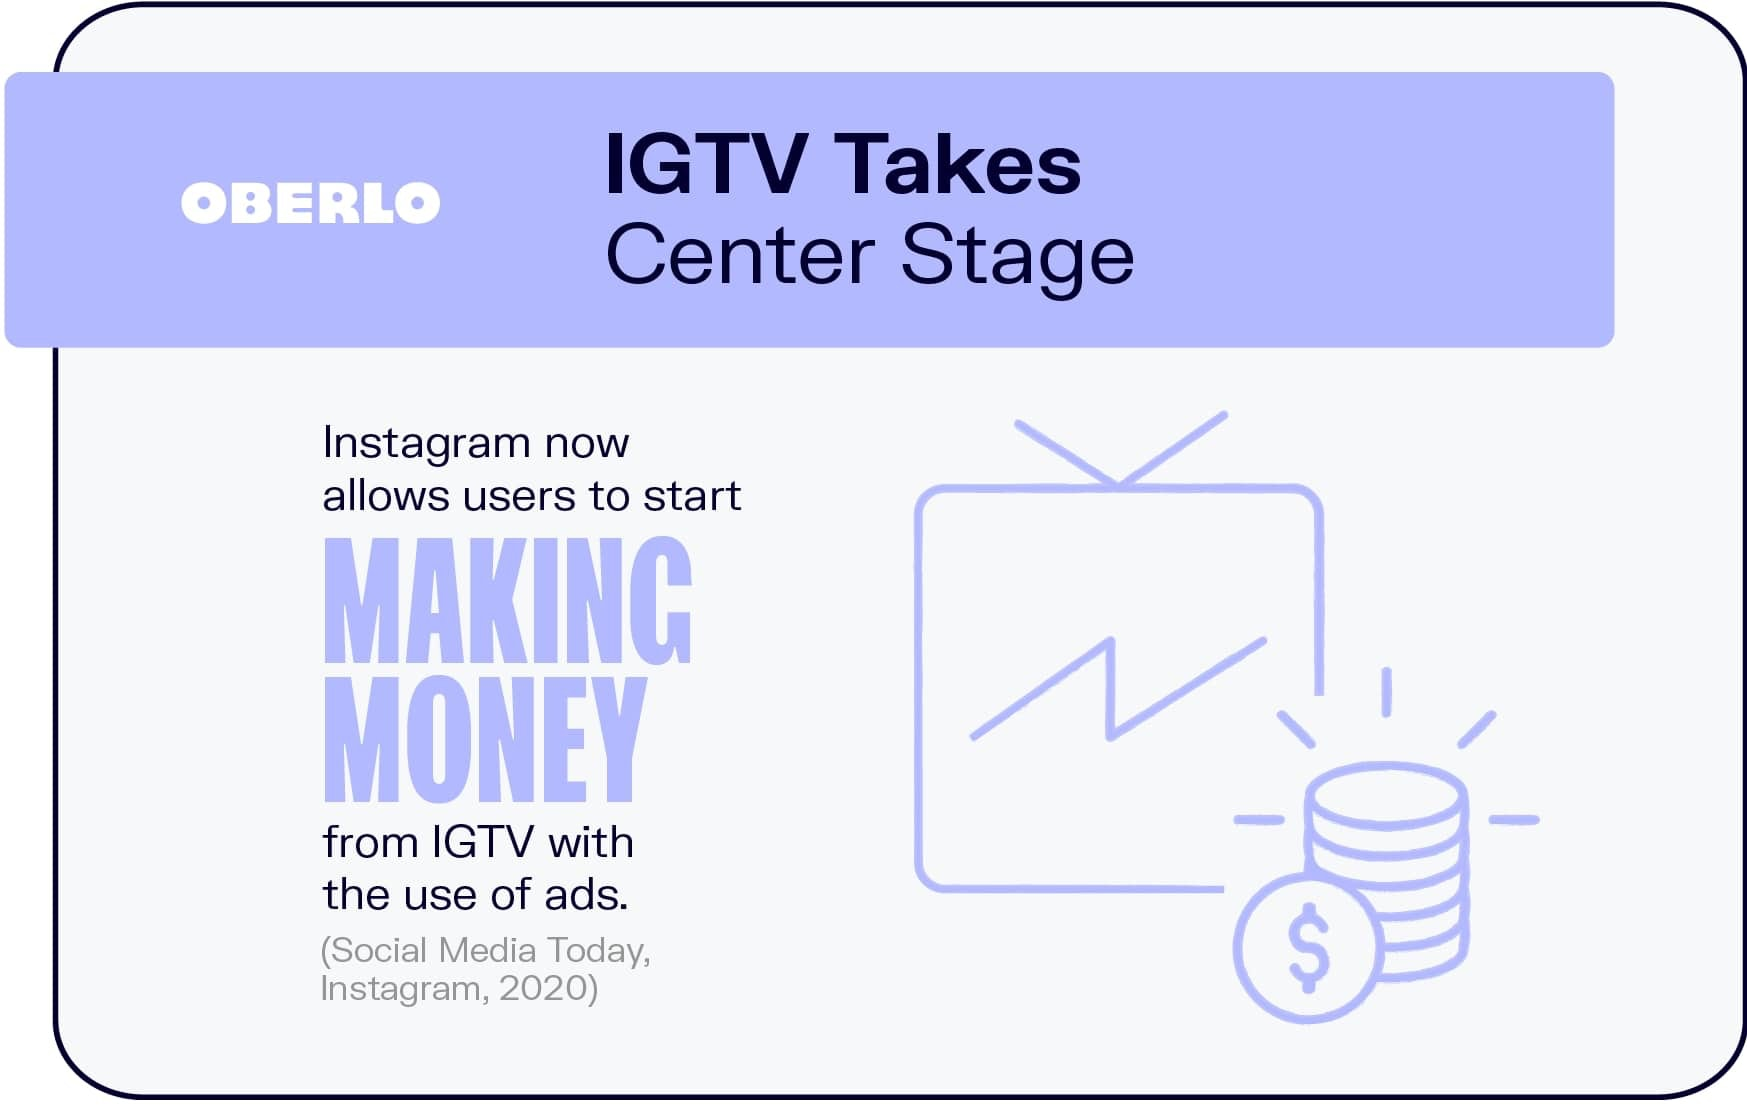 IGTV Takes Center Stage